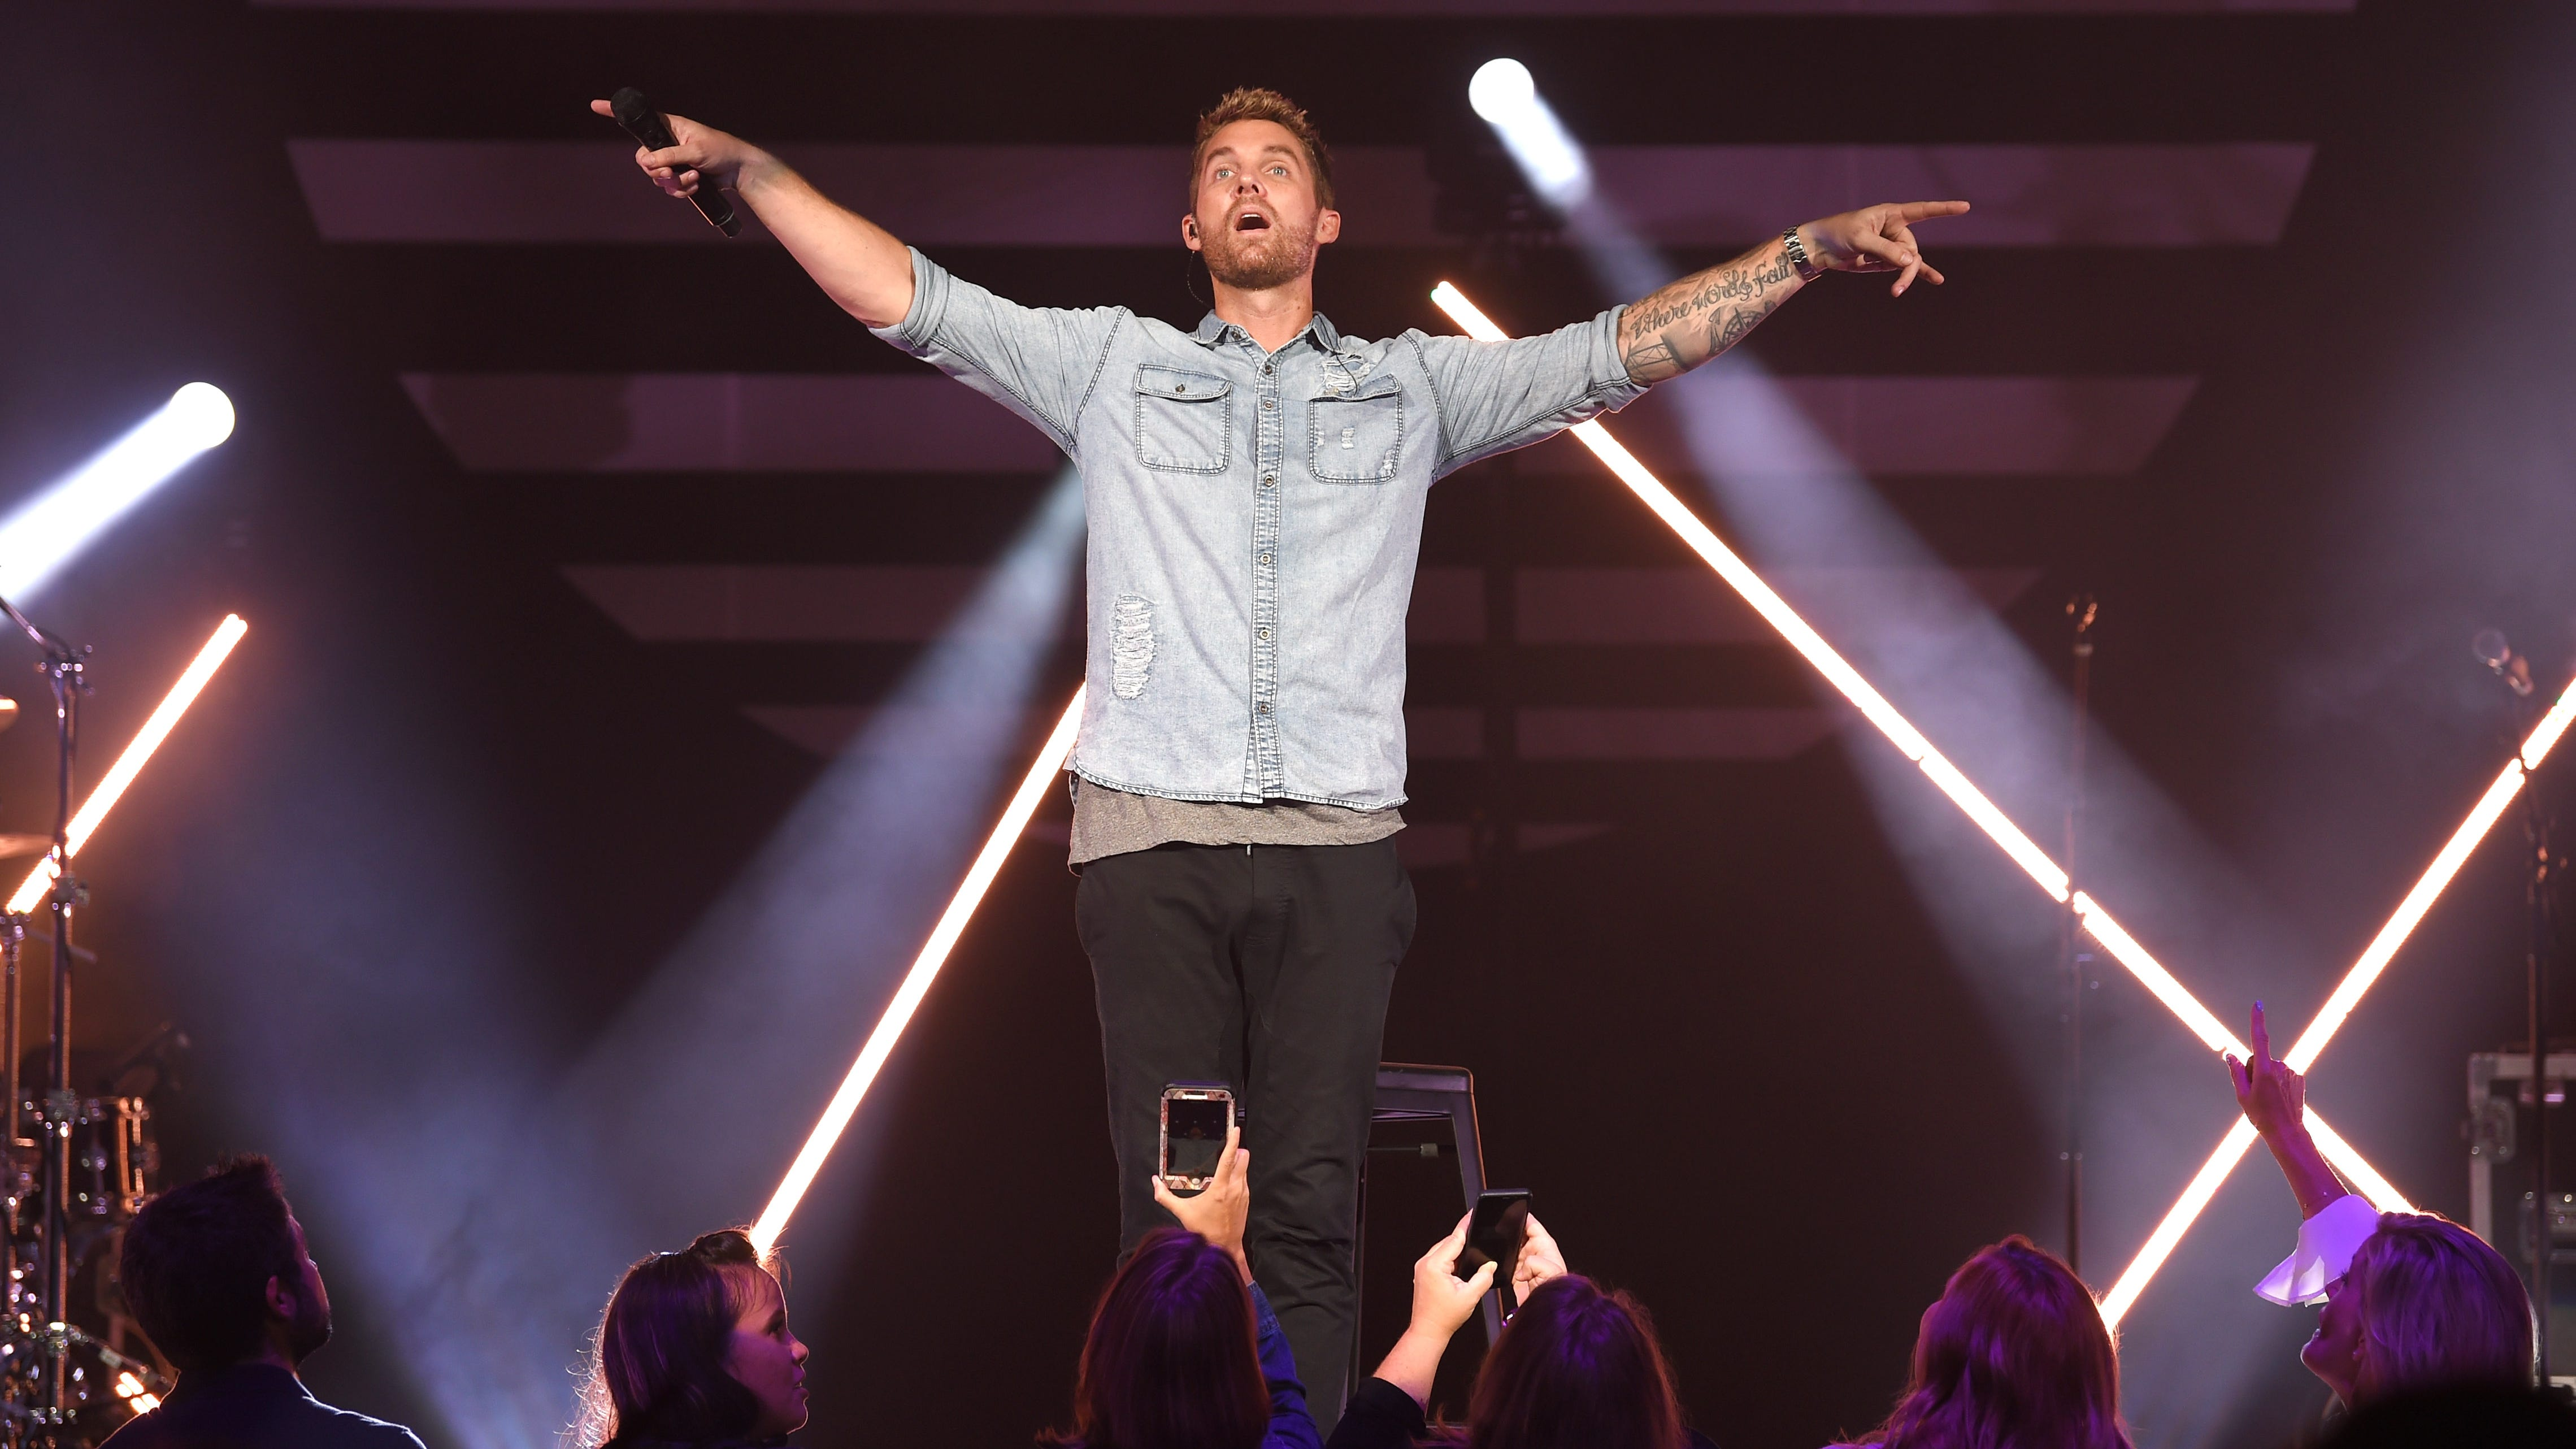 Brett Young is ready to visit his favorite cities on tour again